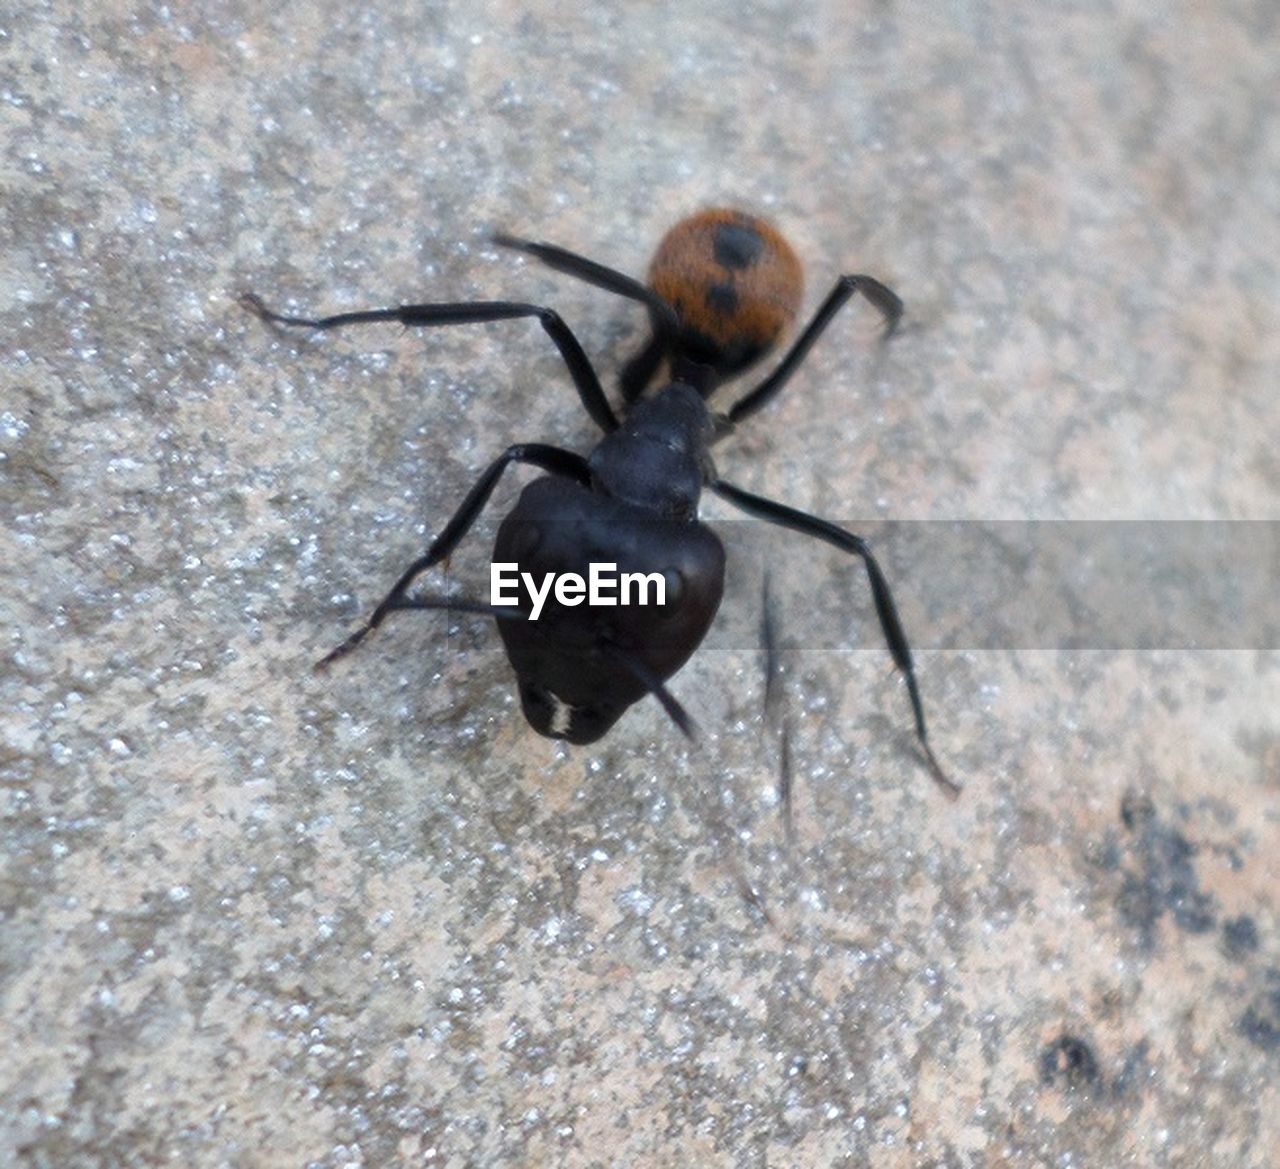 insect, one animal, animal themes, no people, animals in the wild, close-up, outdoors, day, nature